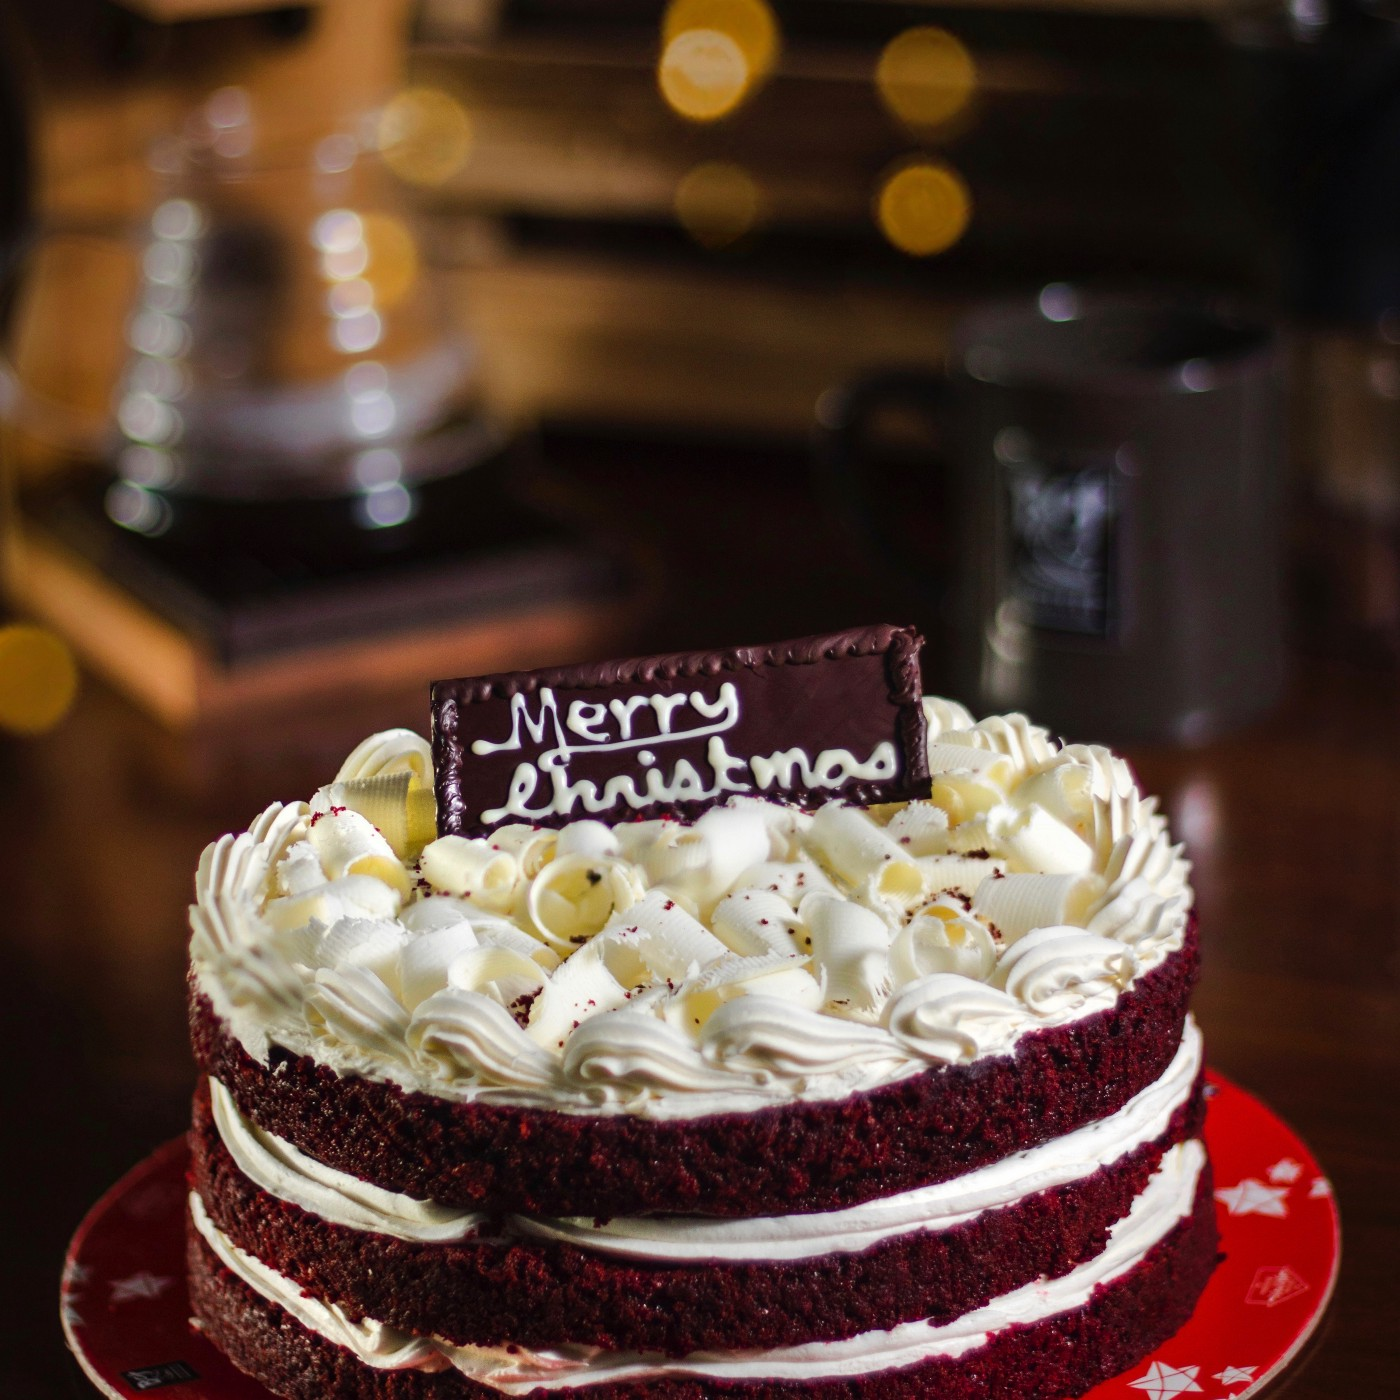 Birthday cake with Merry Christmas written on it.